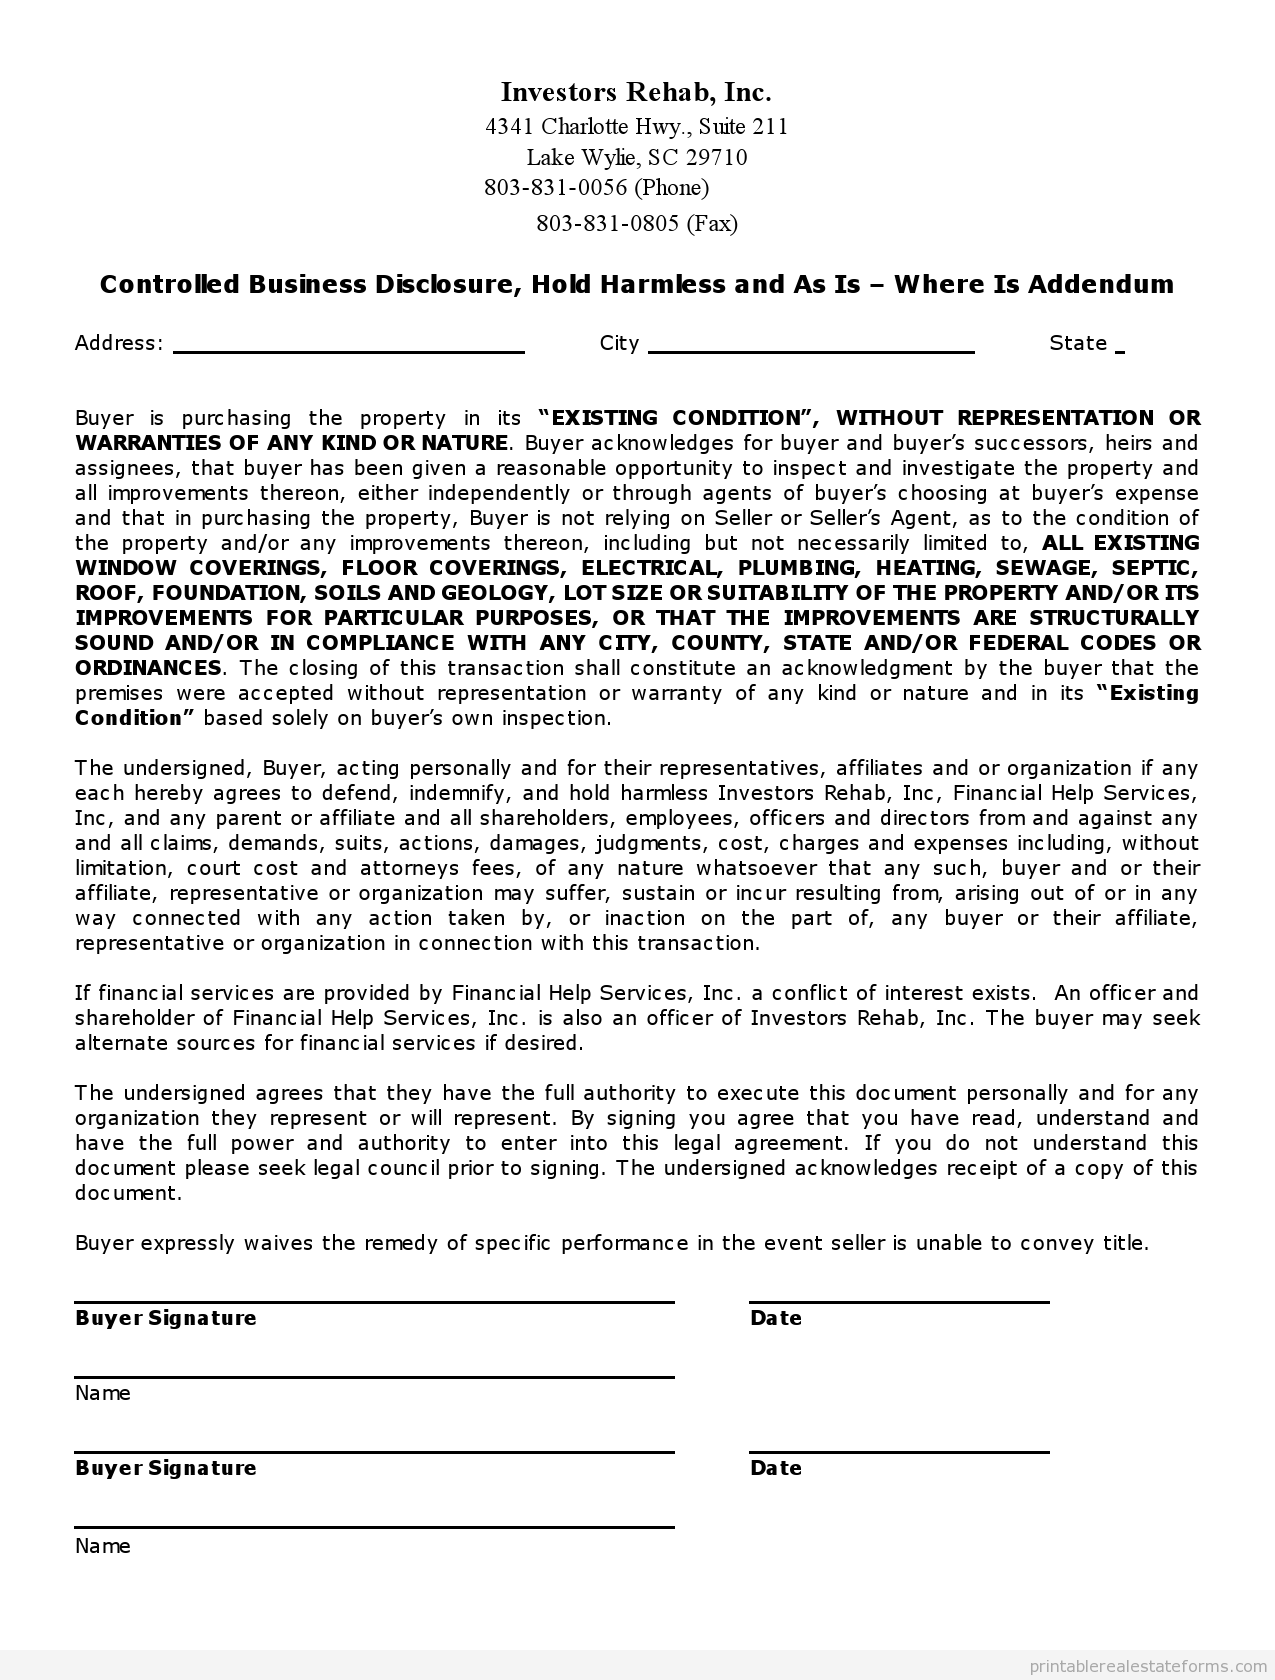 Sample Printable Controlled Business Disclosure As Is Addendum Form Real Estate Forms Legal Forms Online Real Estate